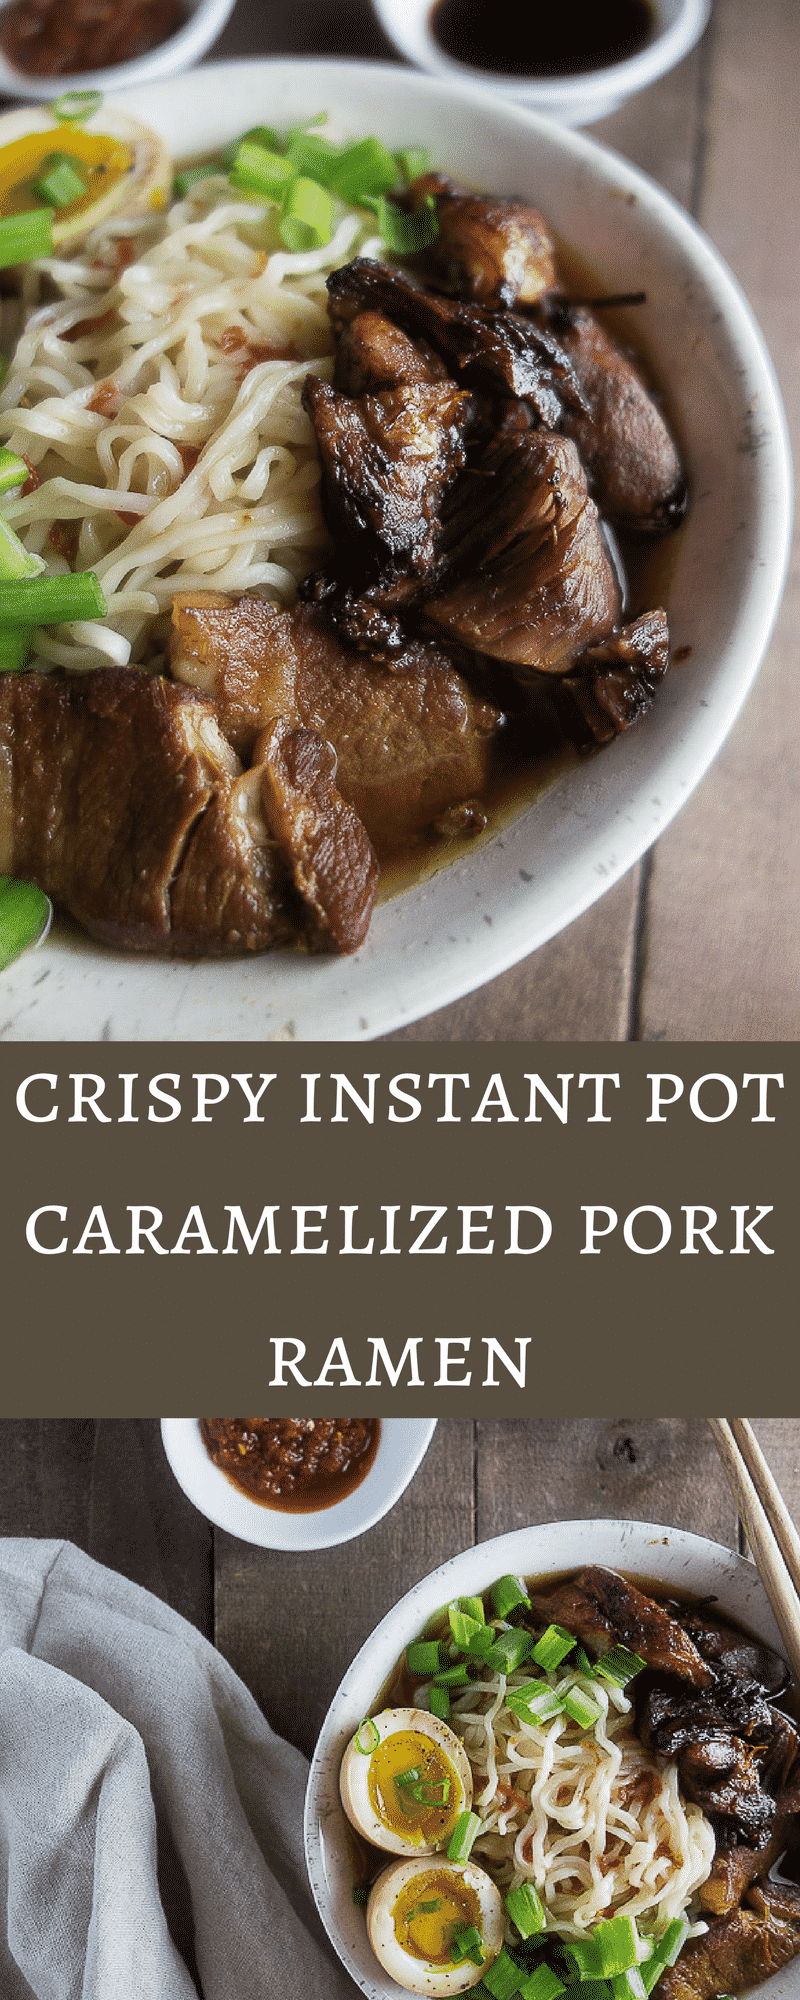 Learn how to make this umami packed crispy Instant Pot Caramelized Pork Ramen in just a few easy steps. Amazingly delicious and easy to make!ramen noodles | tonkotsu ramen | pork ramen | easy ramen recipe | japanese ramen | ramen egg | DIY ramen | authentic ramen | ramen bowl | homemade ramen | ramen broth | pork belly ramen | chashu ramen | instant pot ramen | instanr pot pork ramen | instant pot recipes